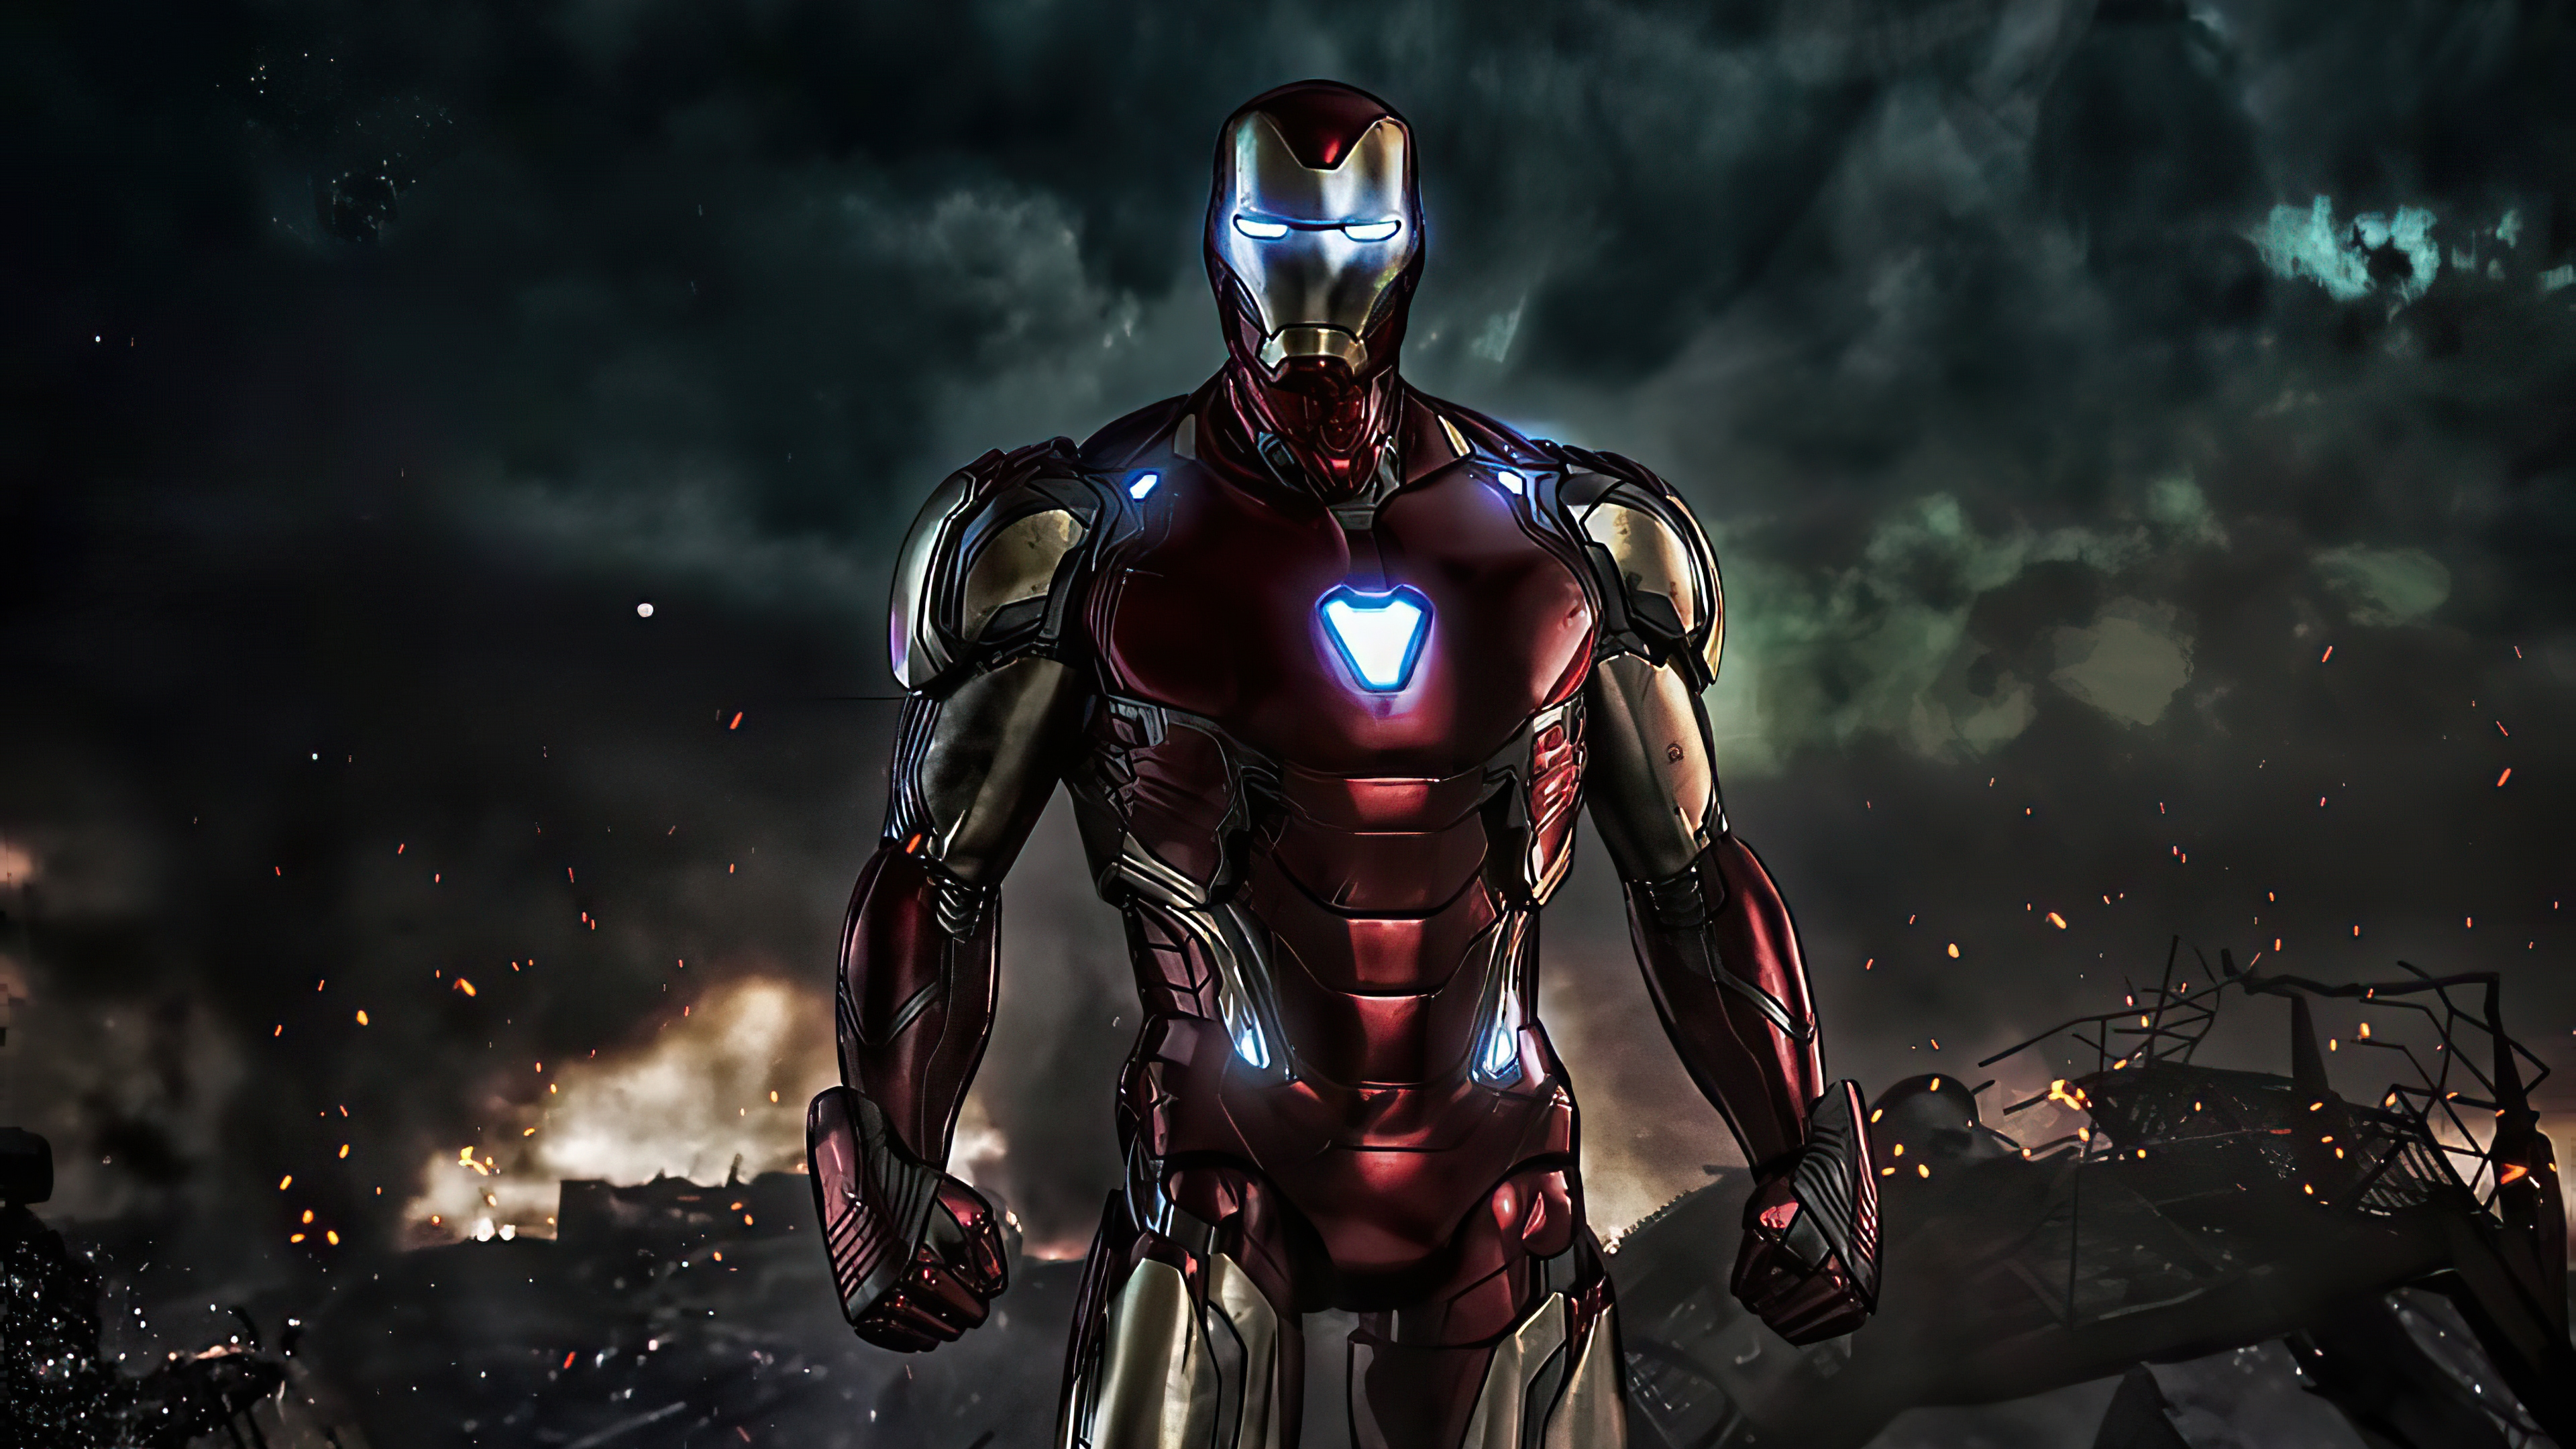 27 Iron Man Hd Wallpapers Backgrounds